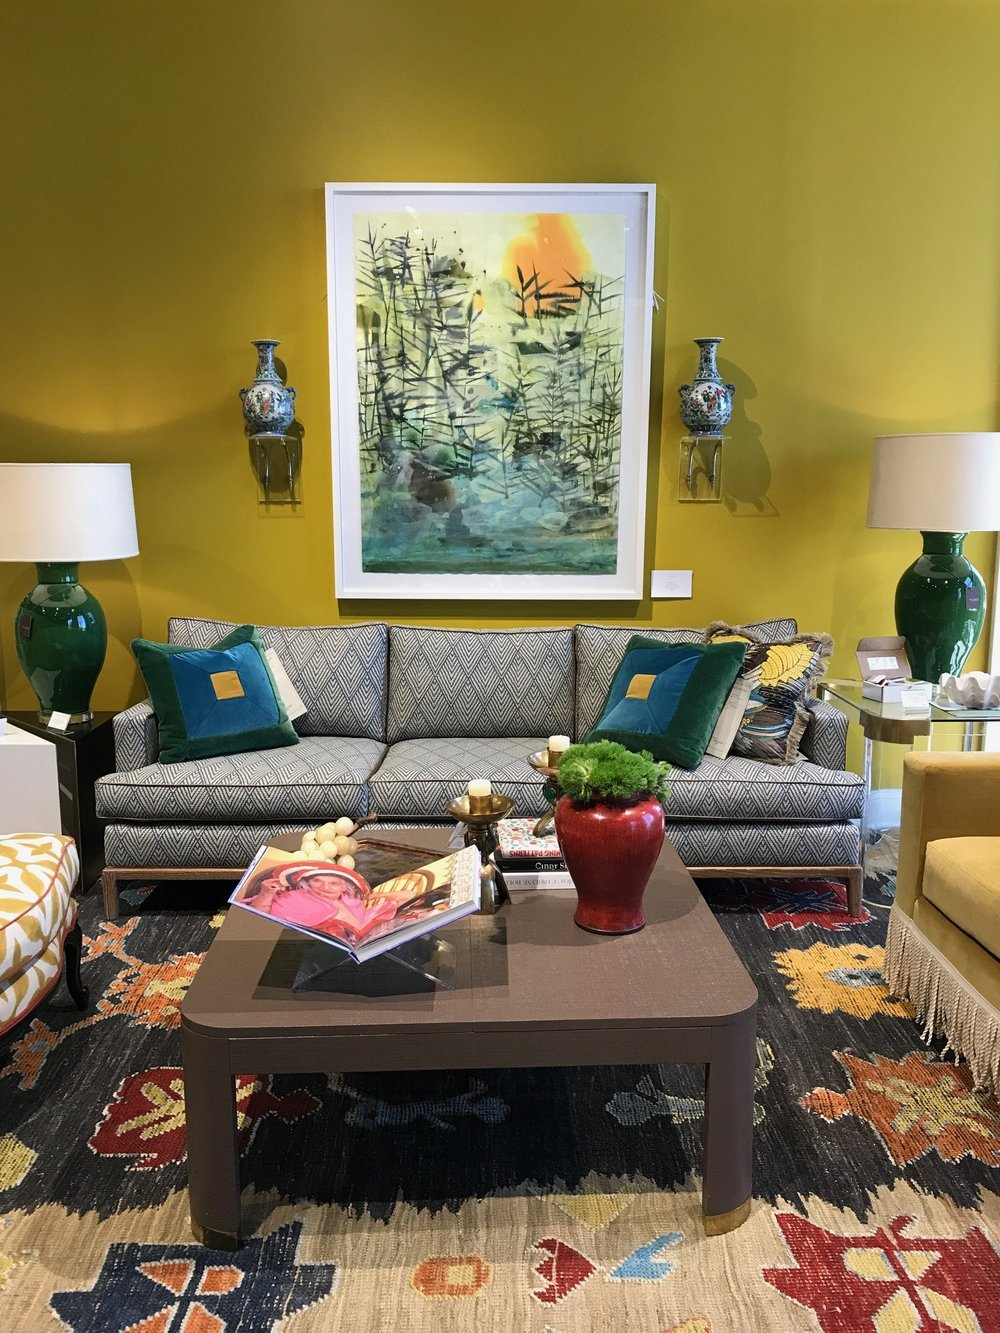 chartreuse paint color interior design.JPG